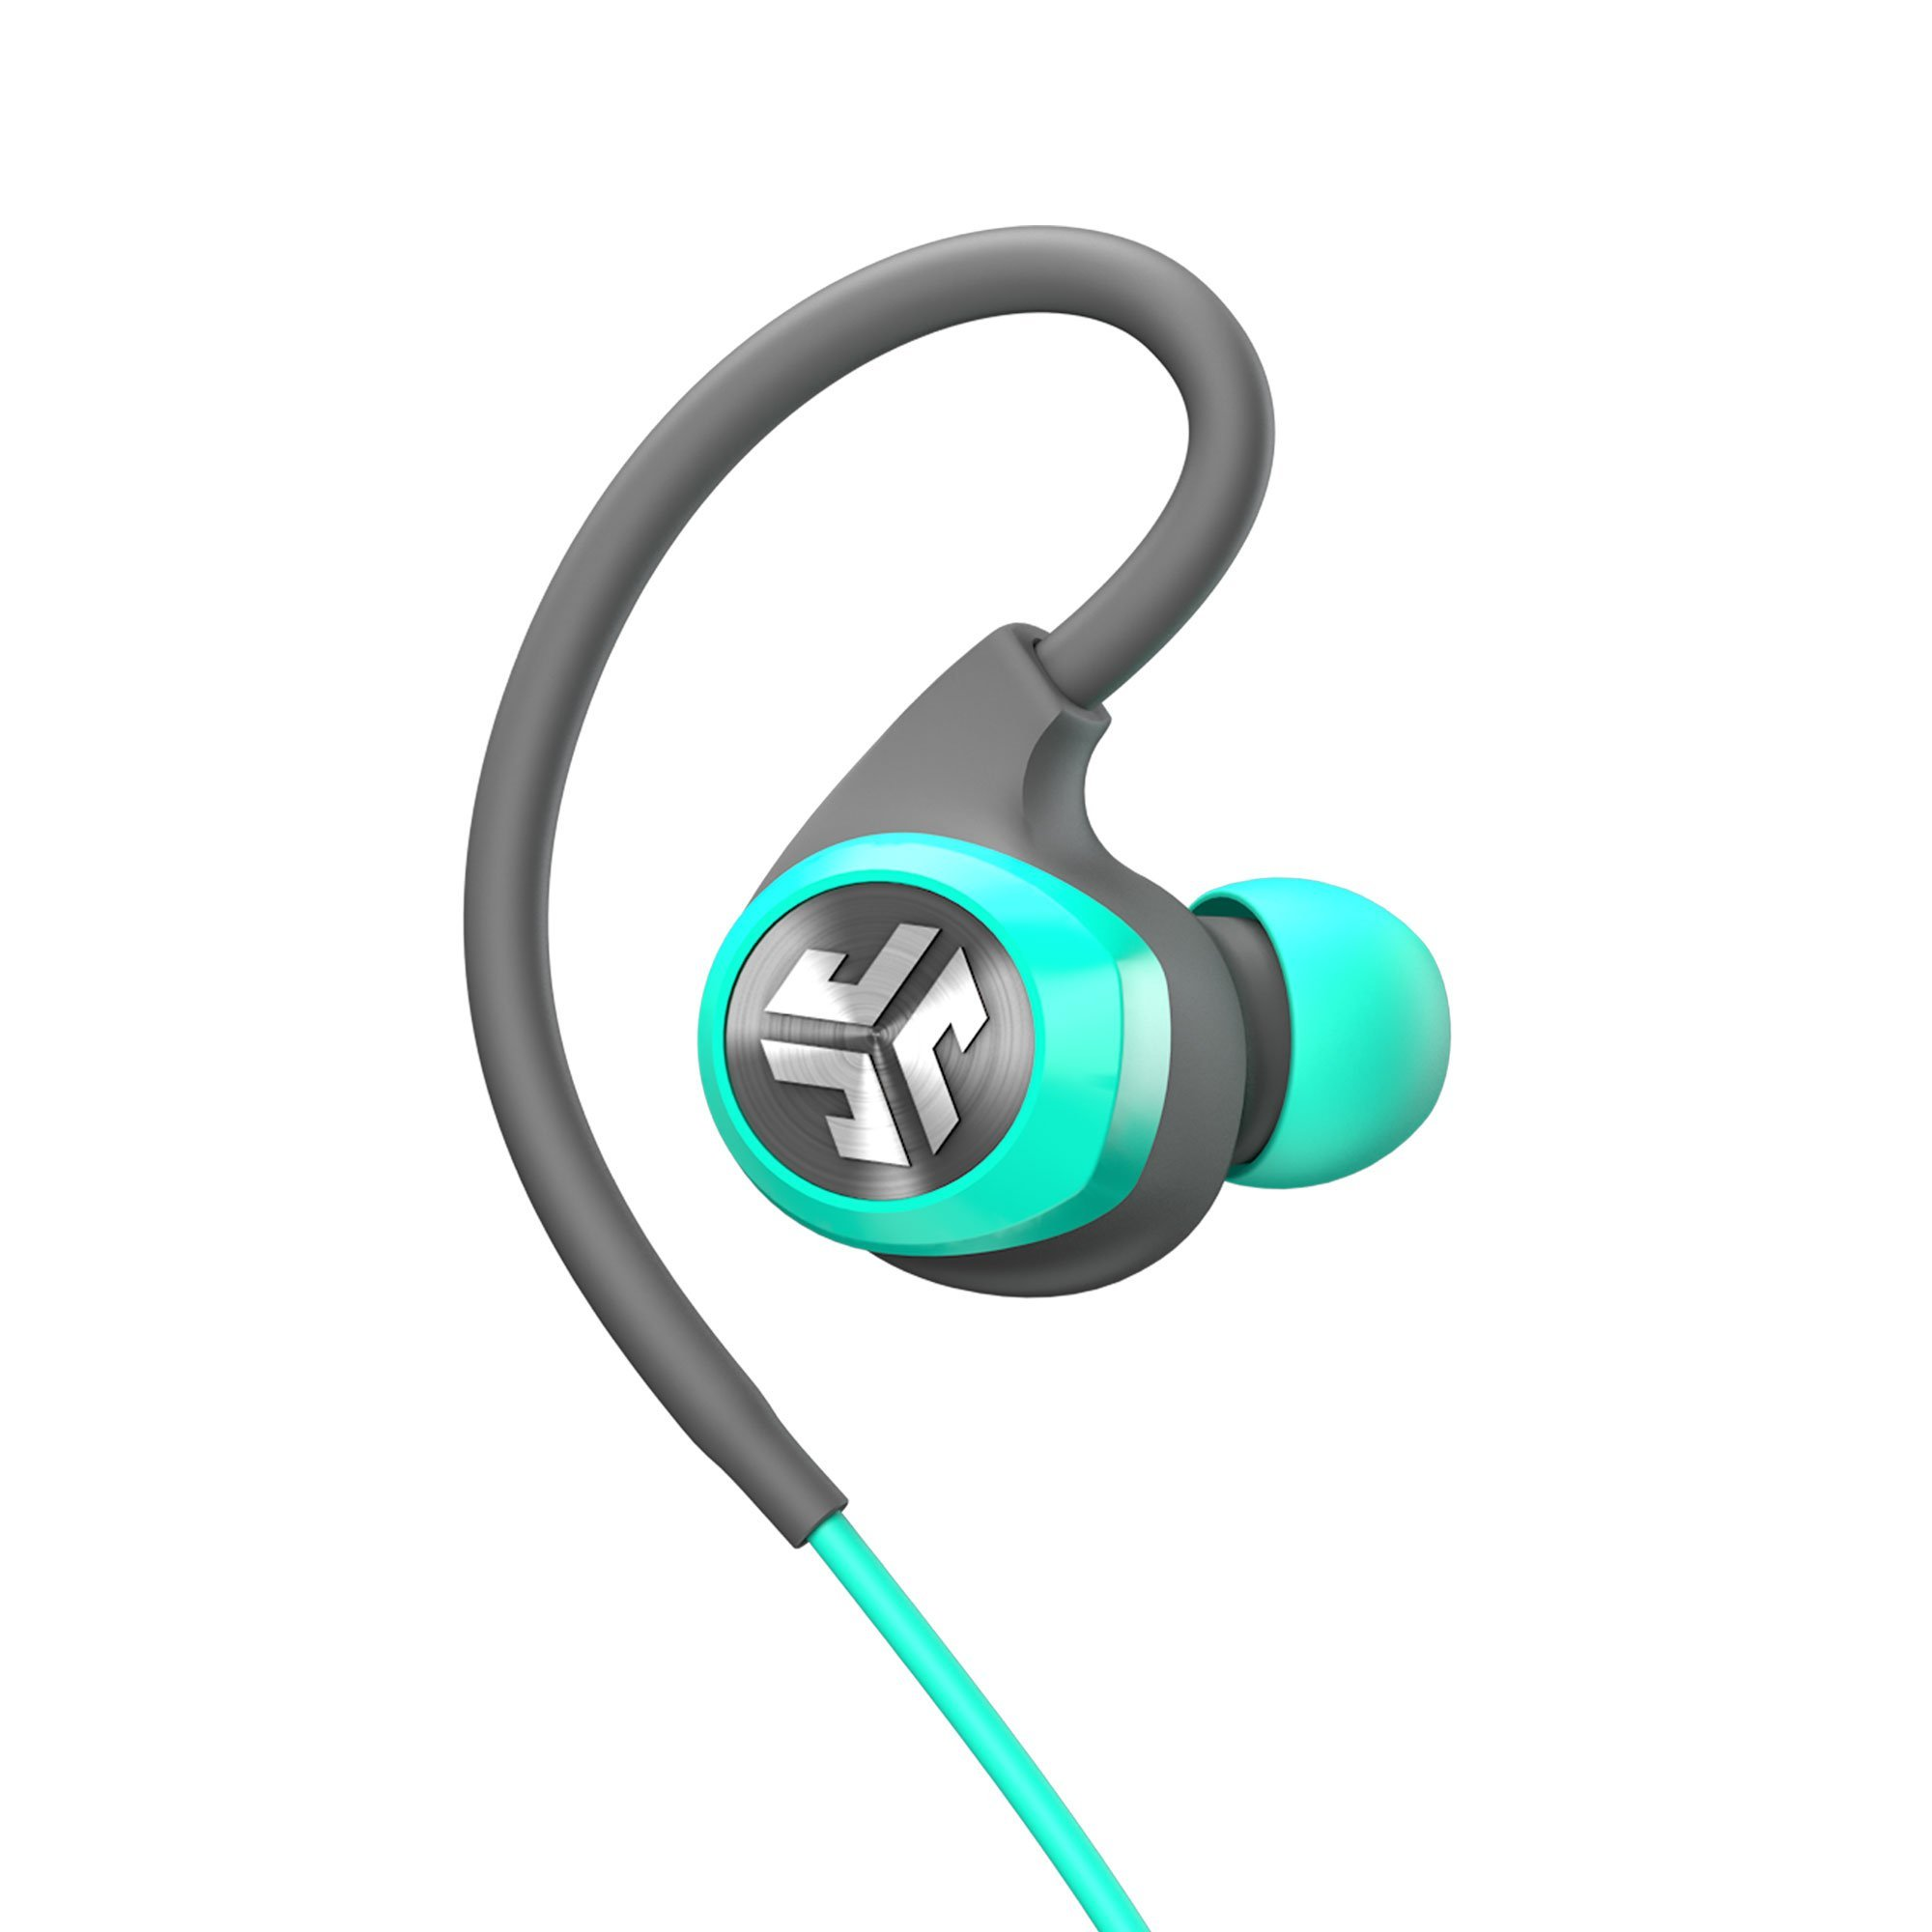 JLab Audio Epic2 Bluetooth 4.0 Wireless Sport Earbuds - Teal - GUARANTEED fitness, waterproof IPX5 rated, pristine high-performance 8mm sound drivers, 12 hr play time w/ microphone (Certified Refurbis